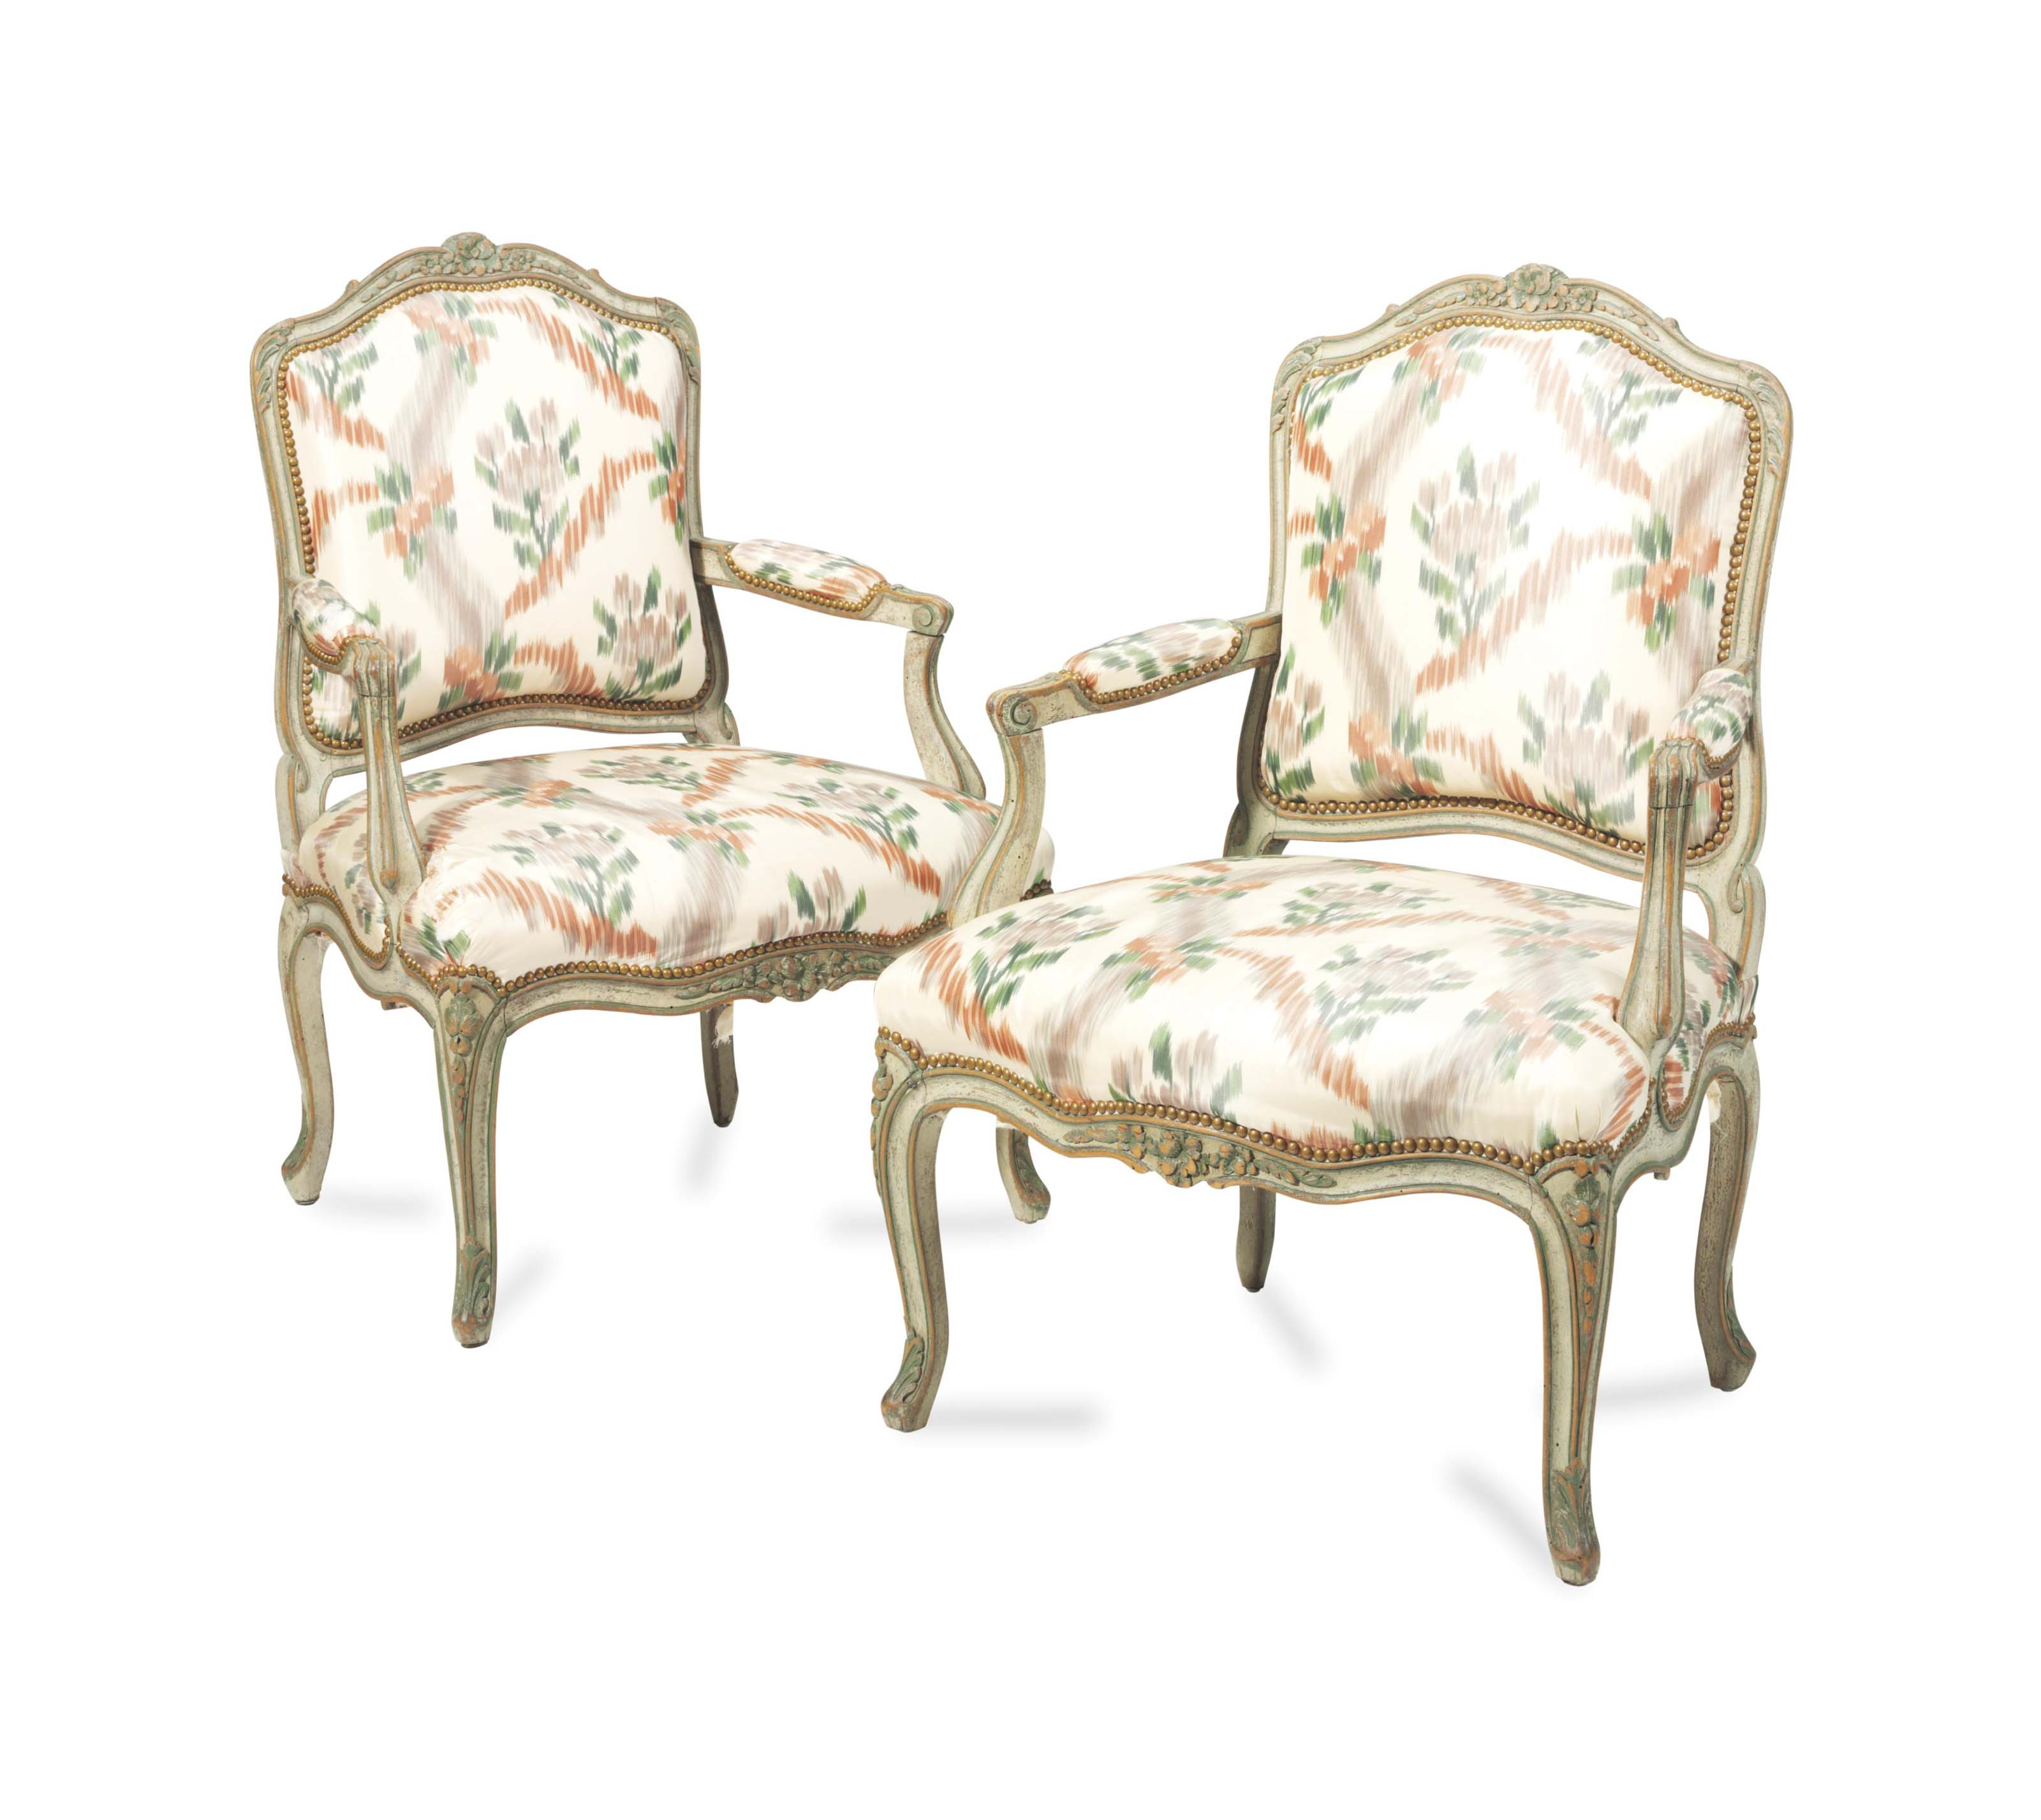 A PAIR OF FRENCH GREEN AND GREY-PAINTED FAUTEUILS,